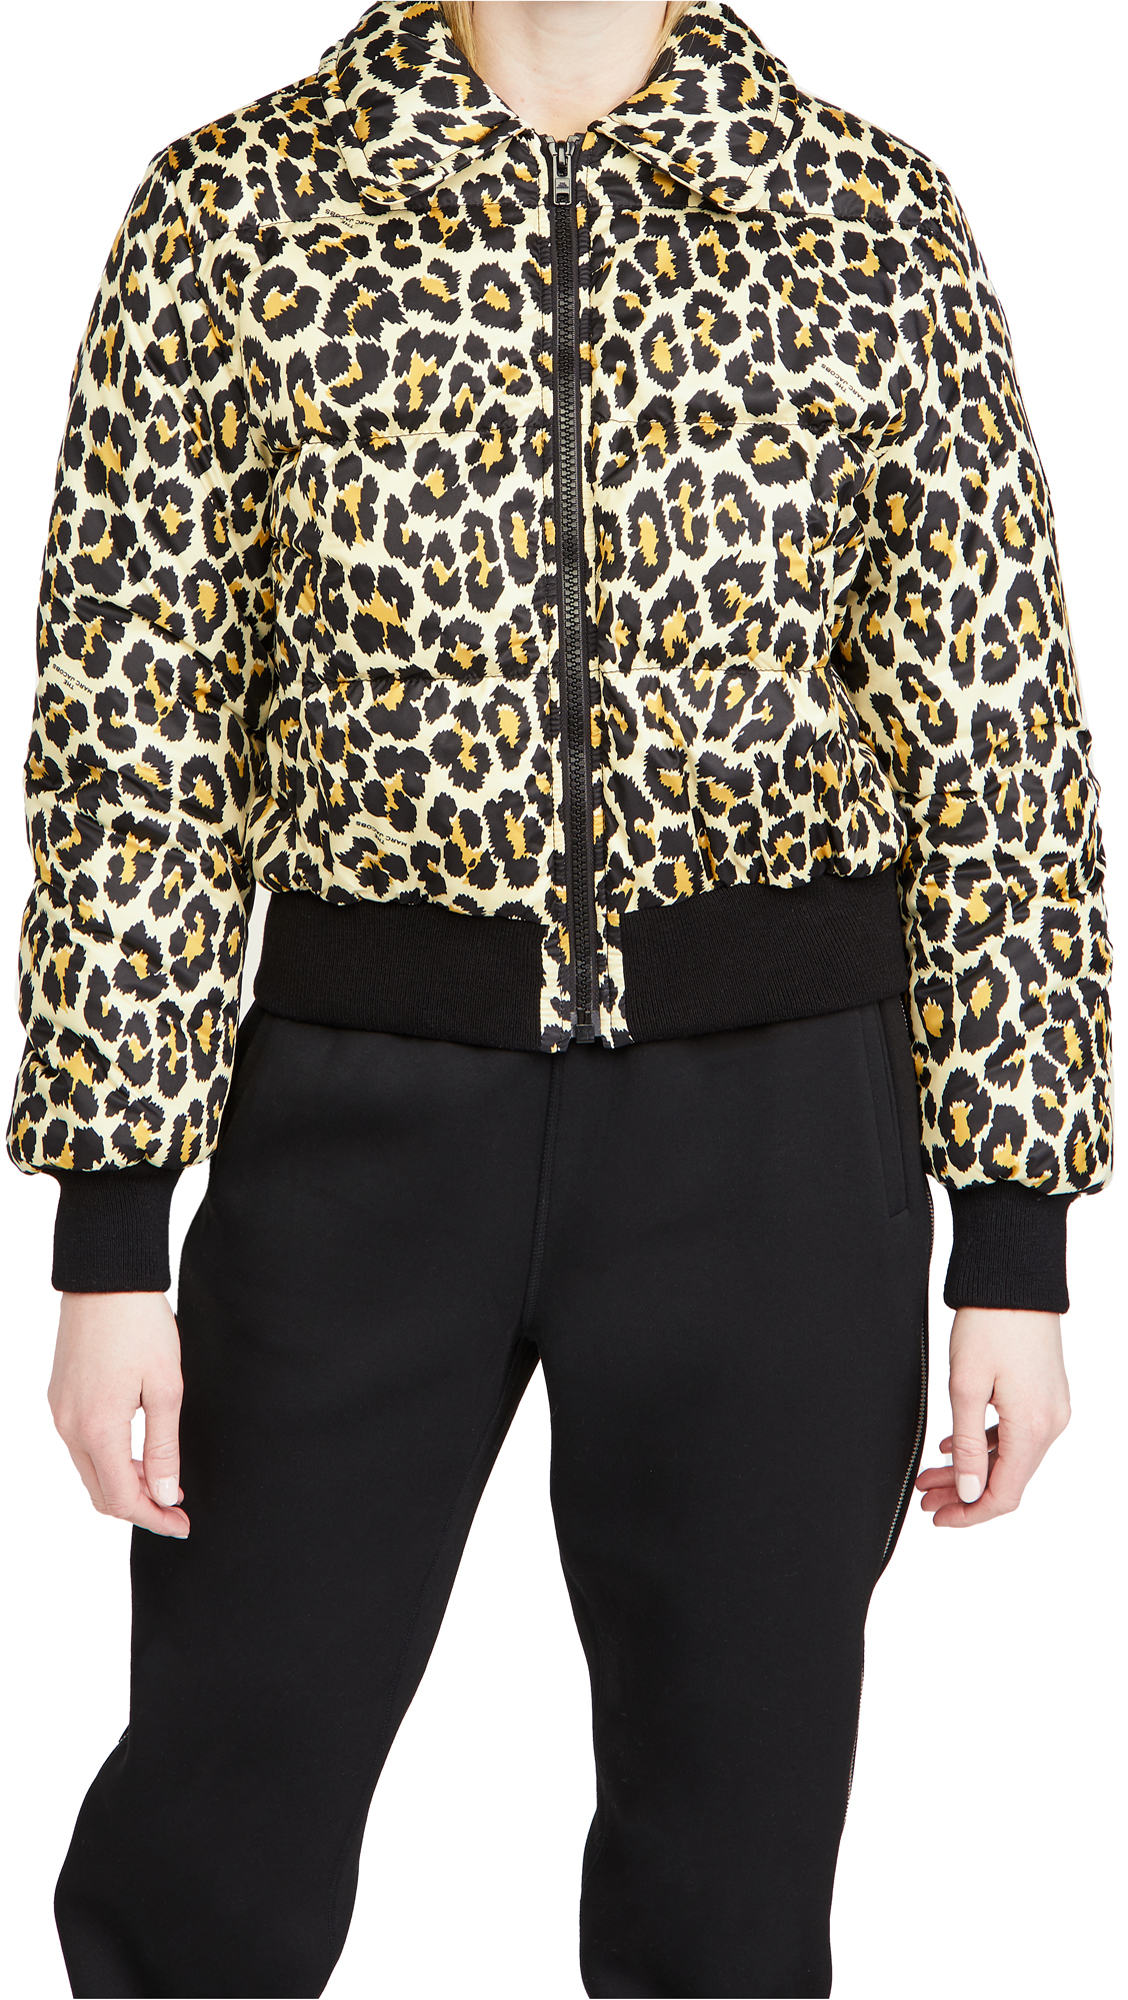 The Marc Jacobs The Puffer Jacket